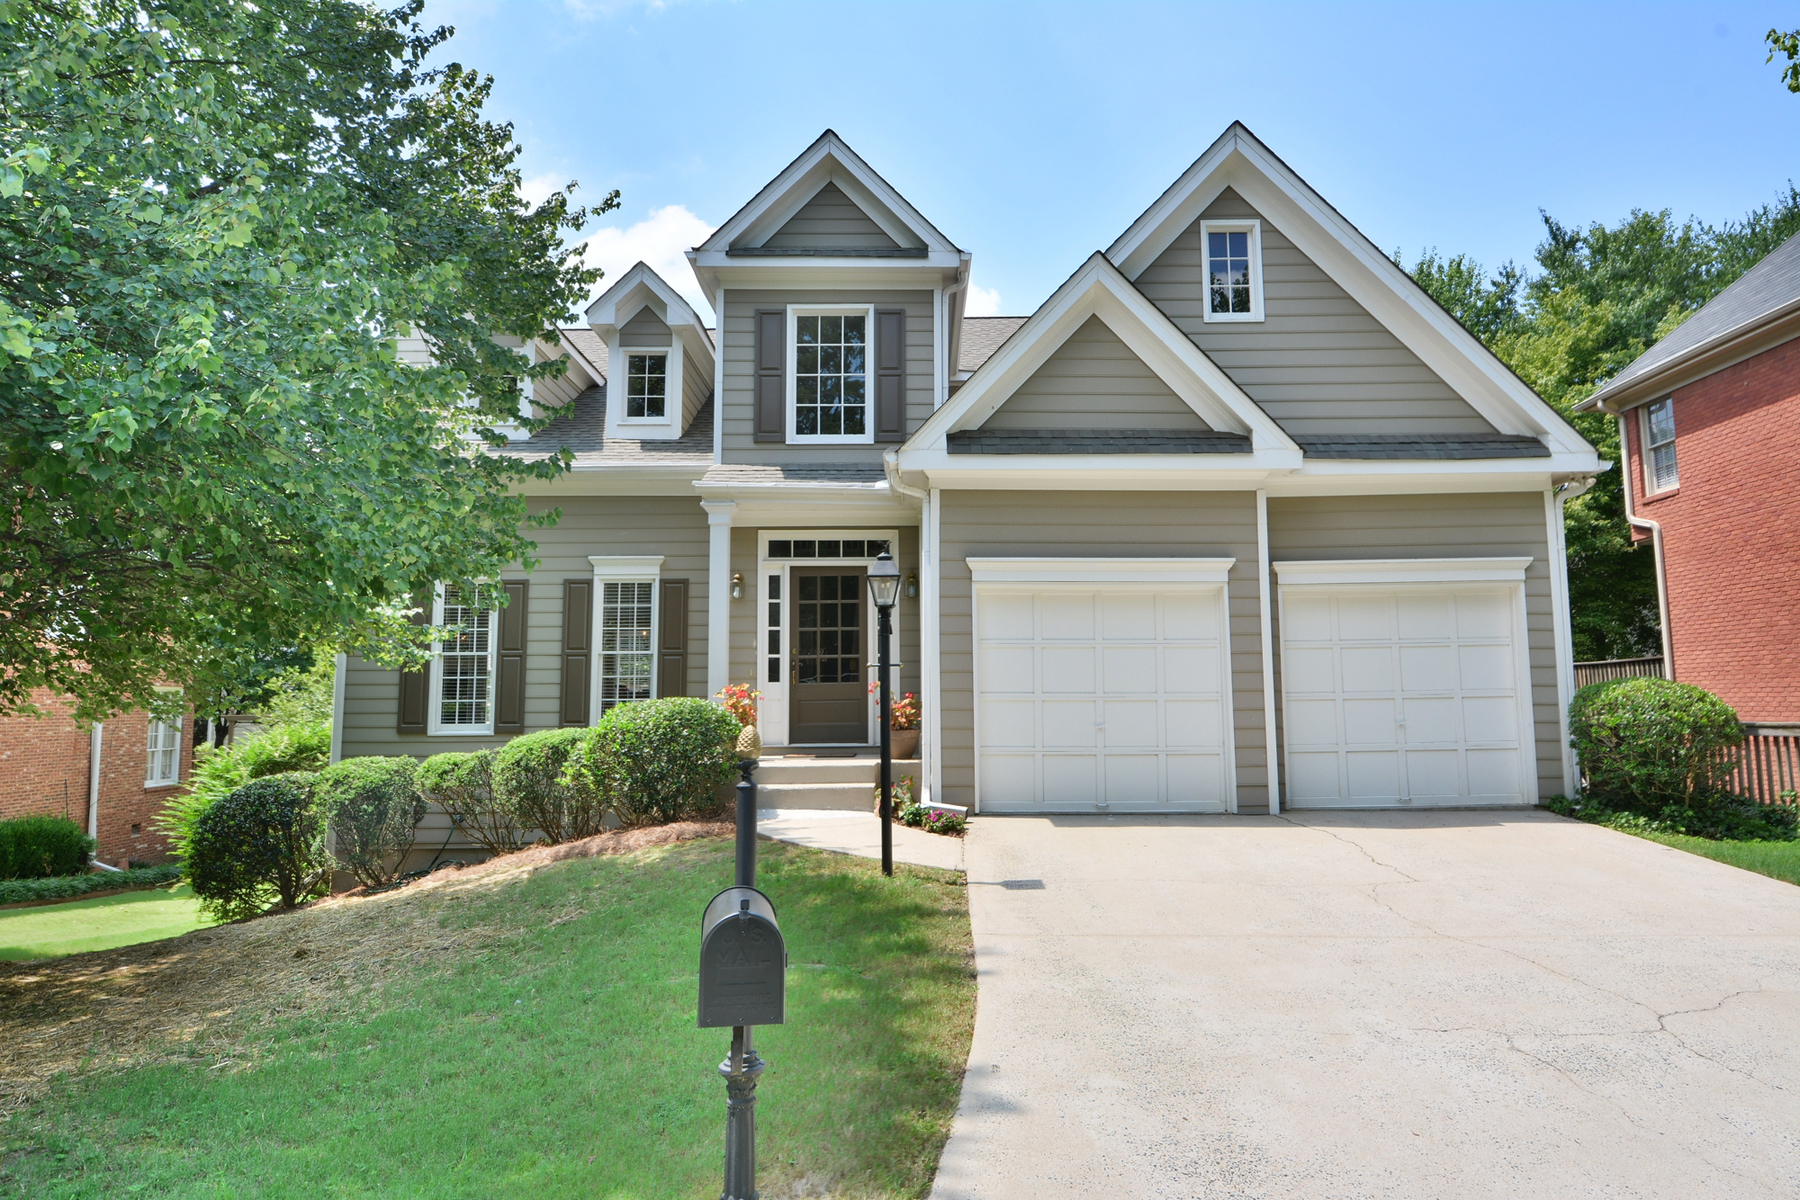 Single Family Home for Sale at Lovely, Well Maintained Home 2766 Log Cabin Drive SE Atlanta, Georgia 30339 United States